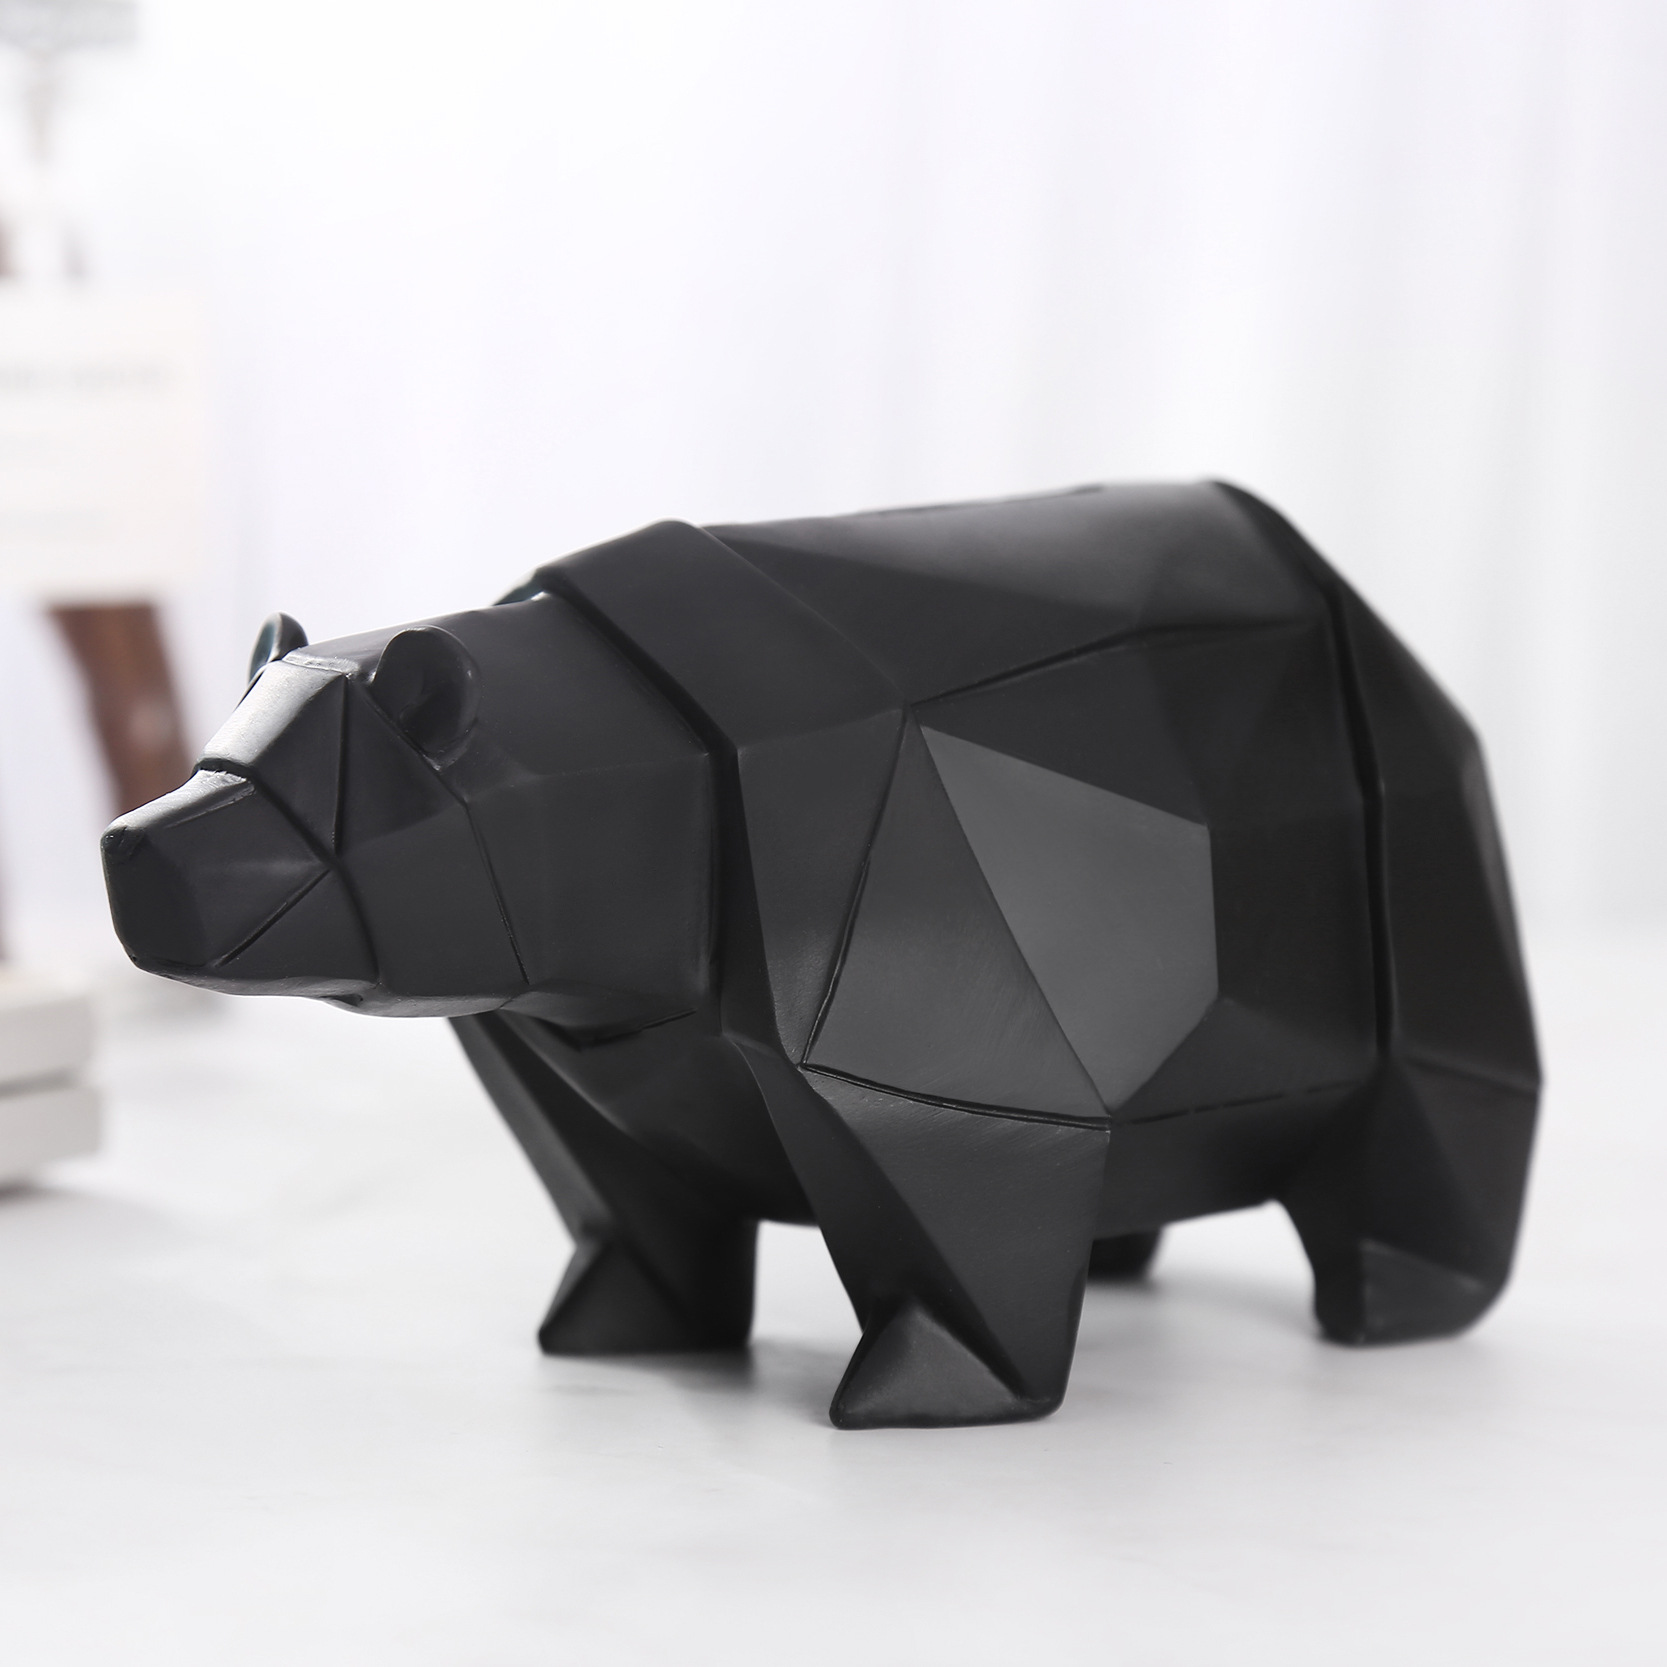 Polar Bear Geometric Piggy Bank Statues Animals Money Banks Figurine Resin Art&Craft Kids Gift Toy Home Decoration